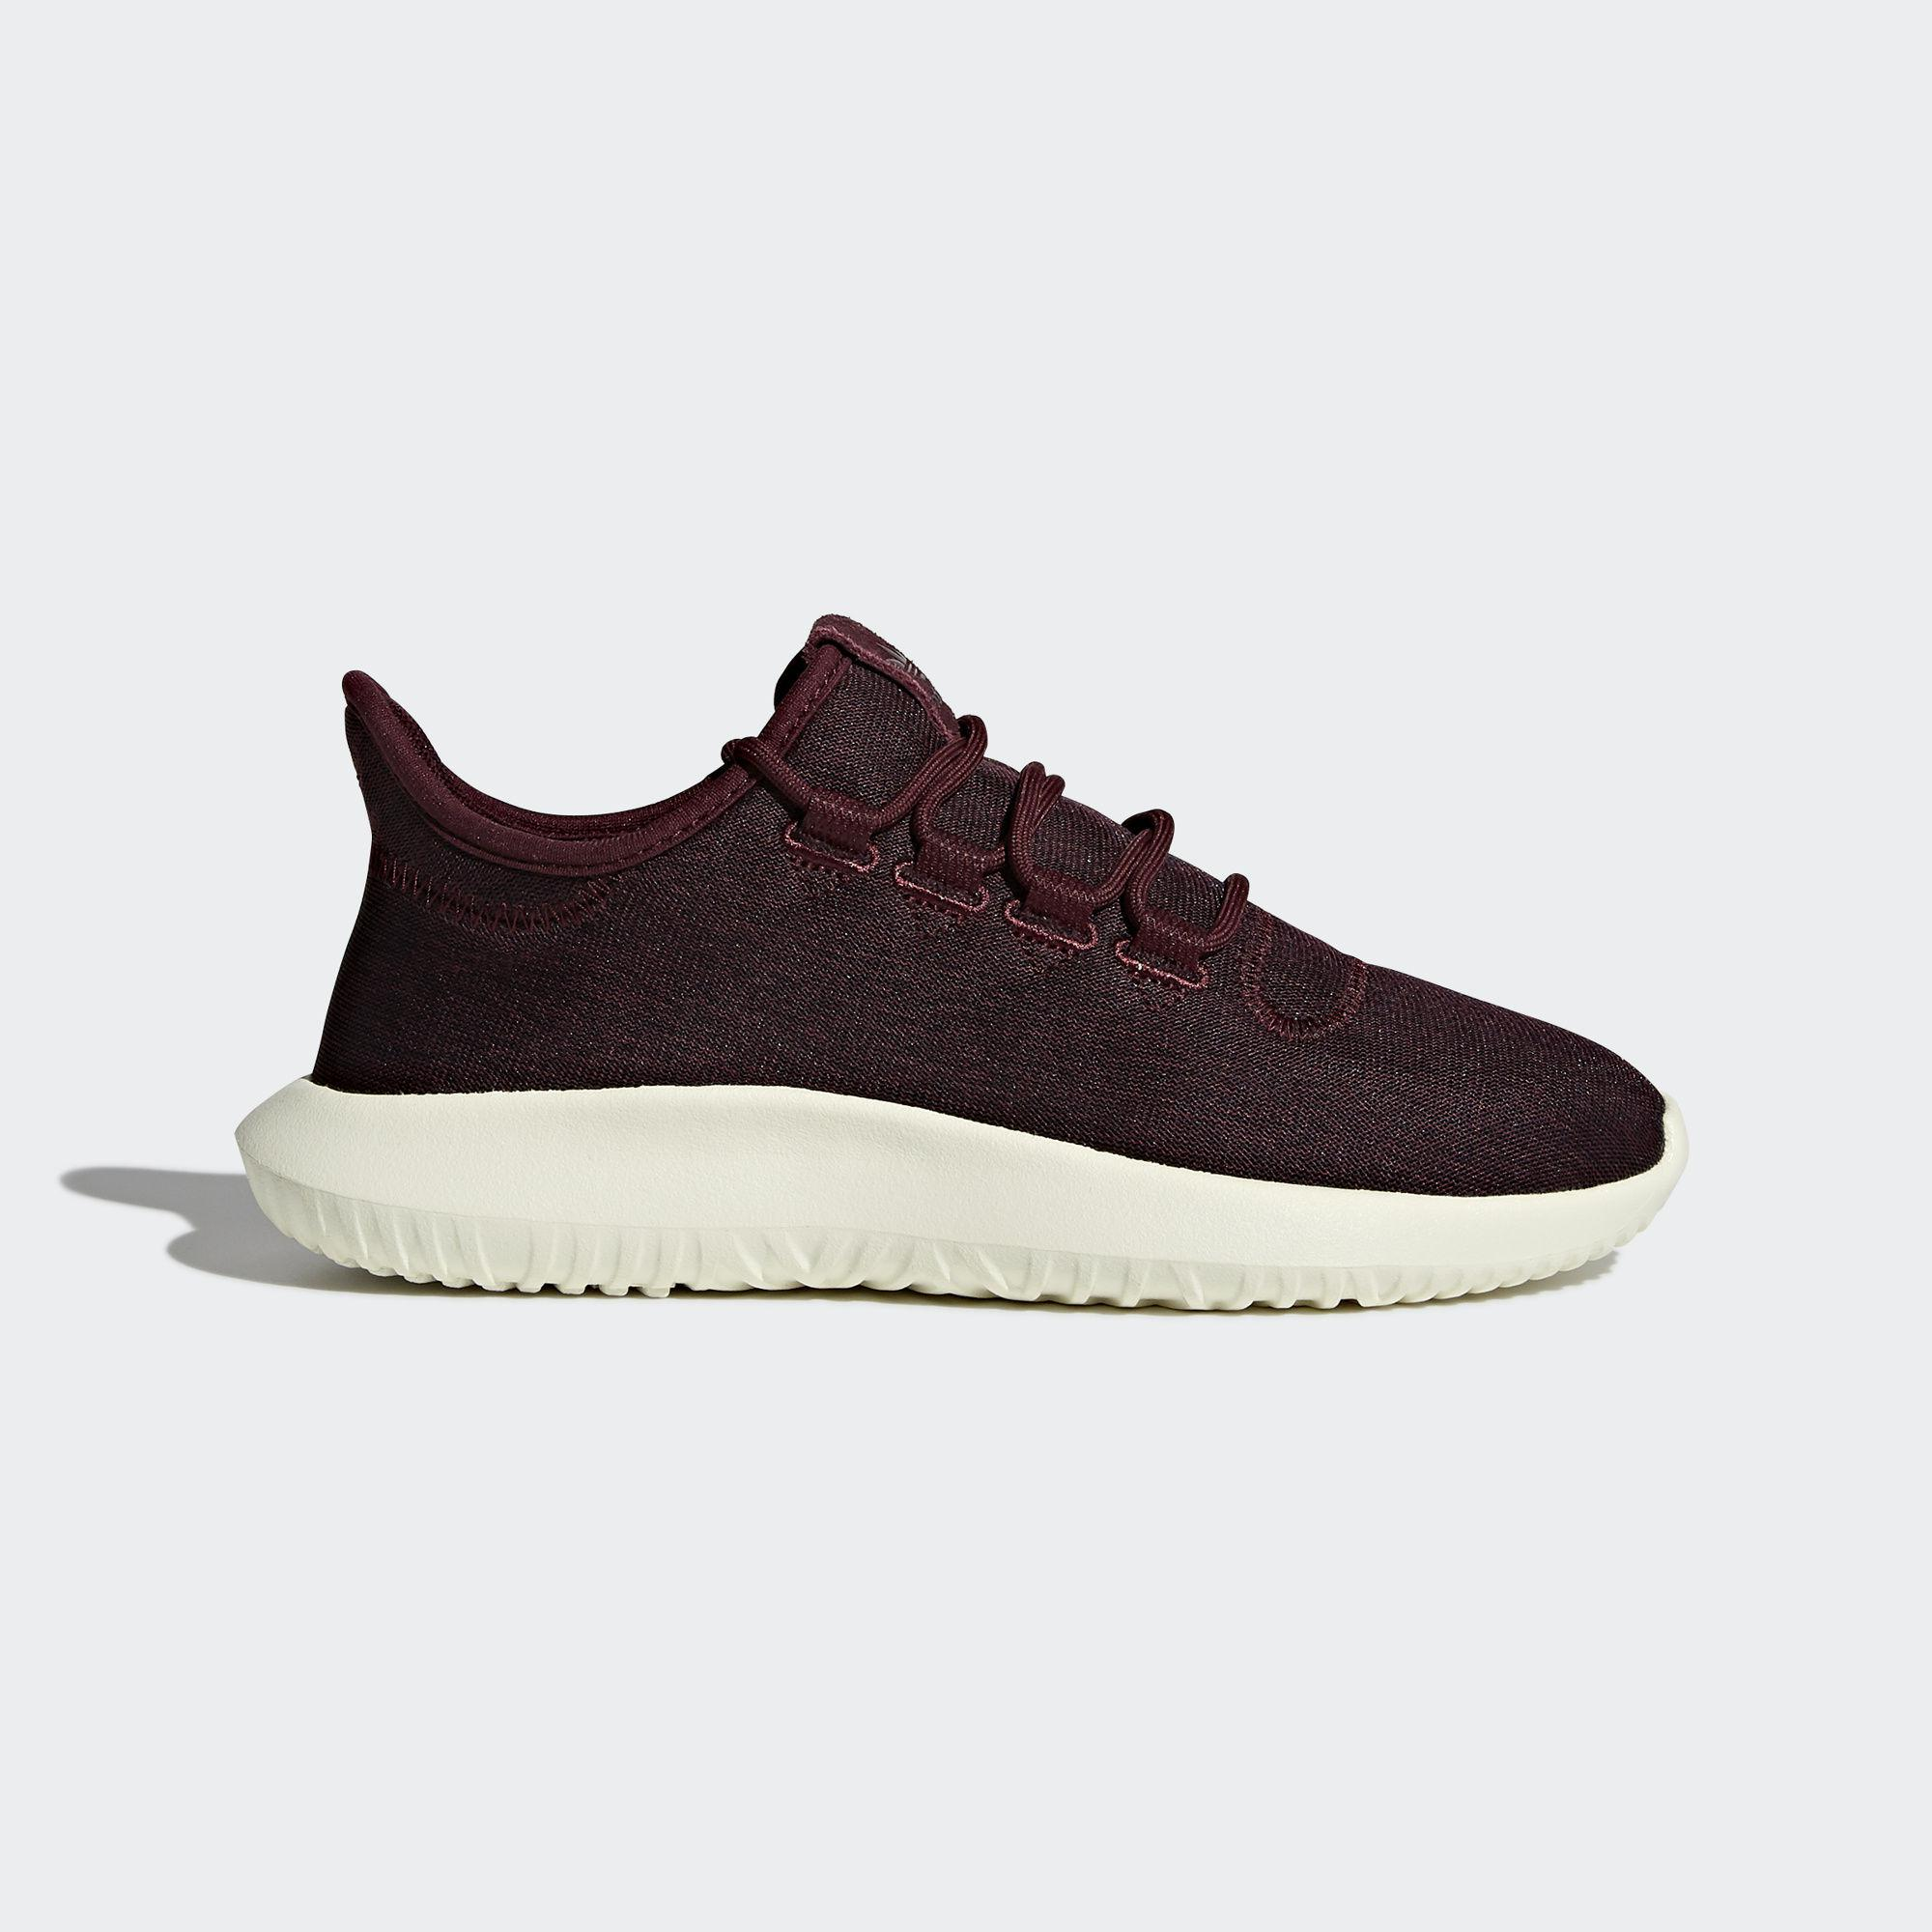 Lyst adidas tubulare ombra scarpe in rosso